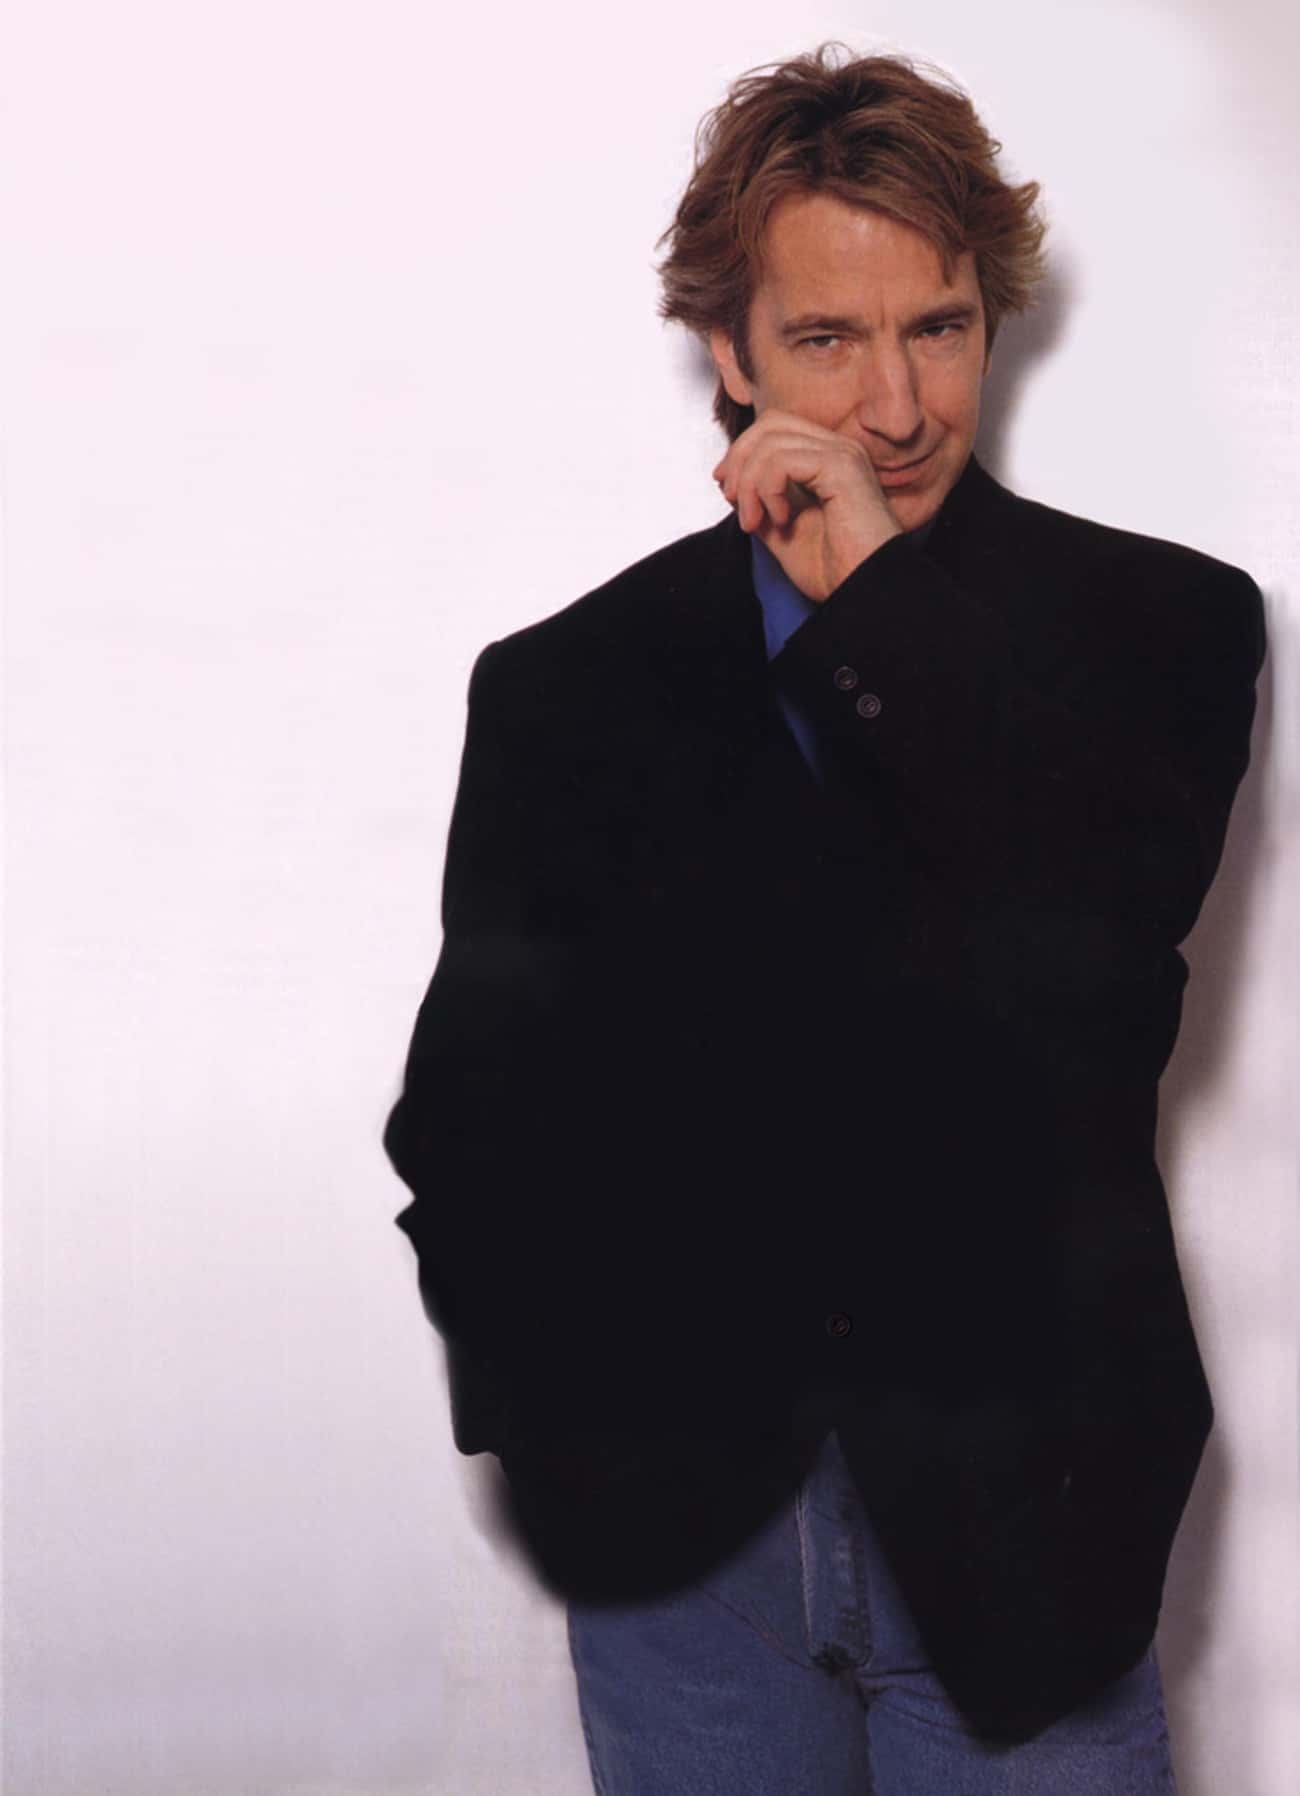 Alan Rickman in One Tax Kean B is listed (or ranked) 1 on the list Hot Alan Rickman Photos